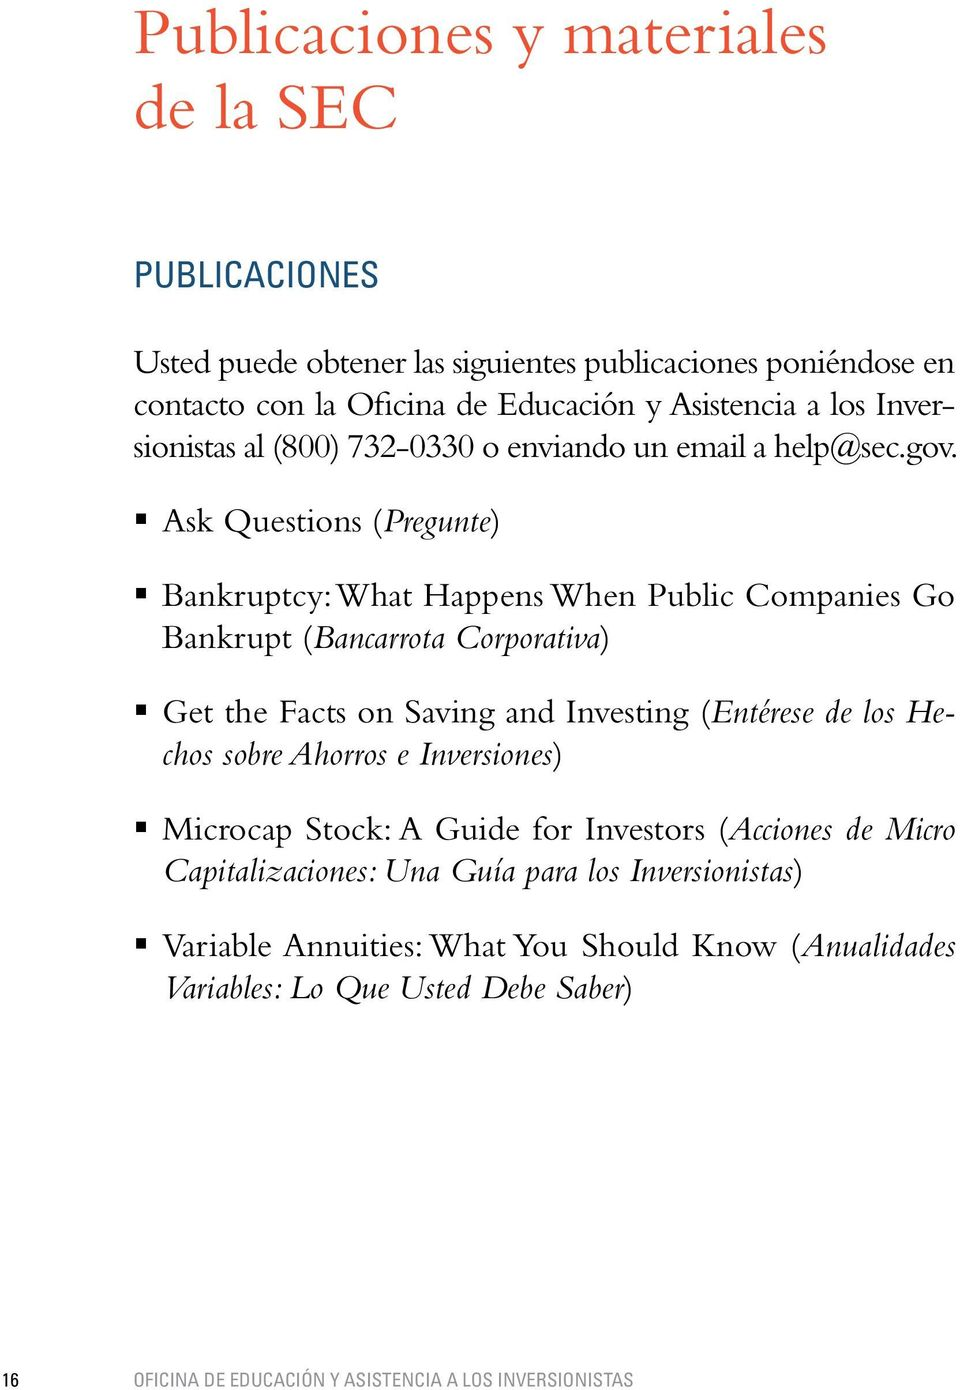 Ask Questions (Pregunte) Bankruptcy: What Happens When Public Companies Go Bankrupt (Bancarrota Corporativa) Get the Facts on Saving and Investing (Entérese de los Hechos